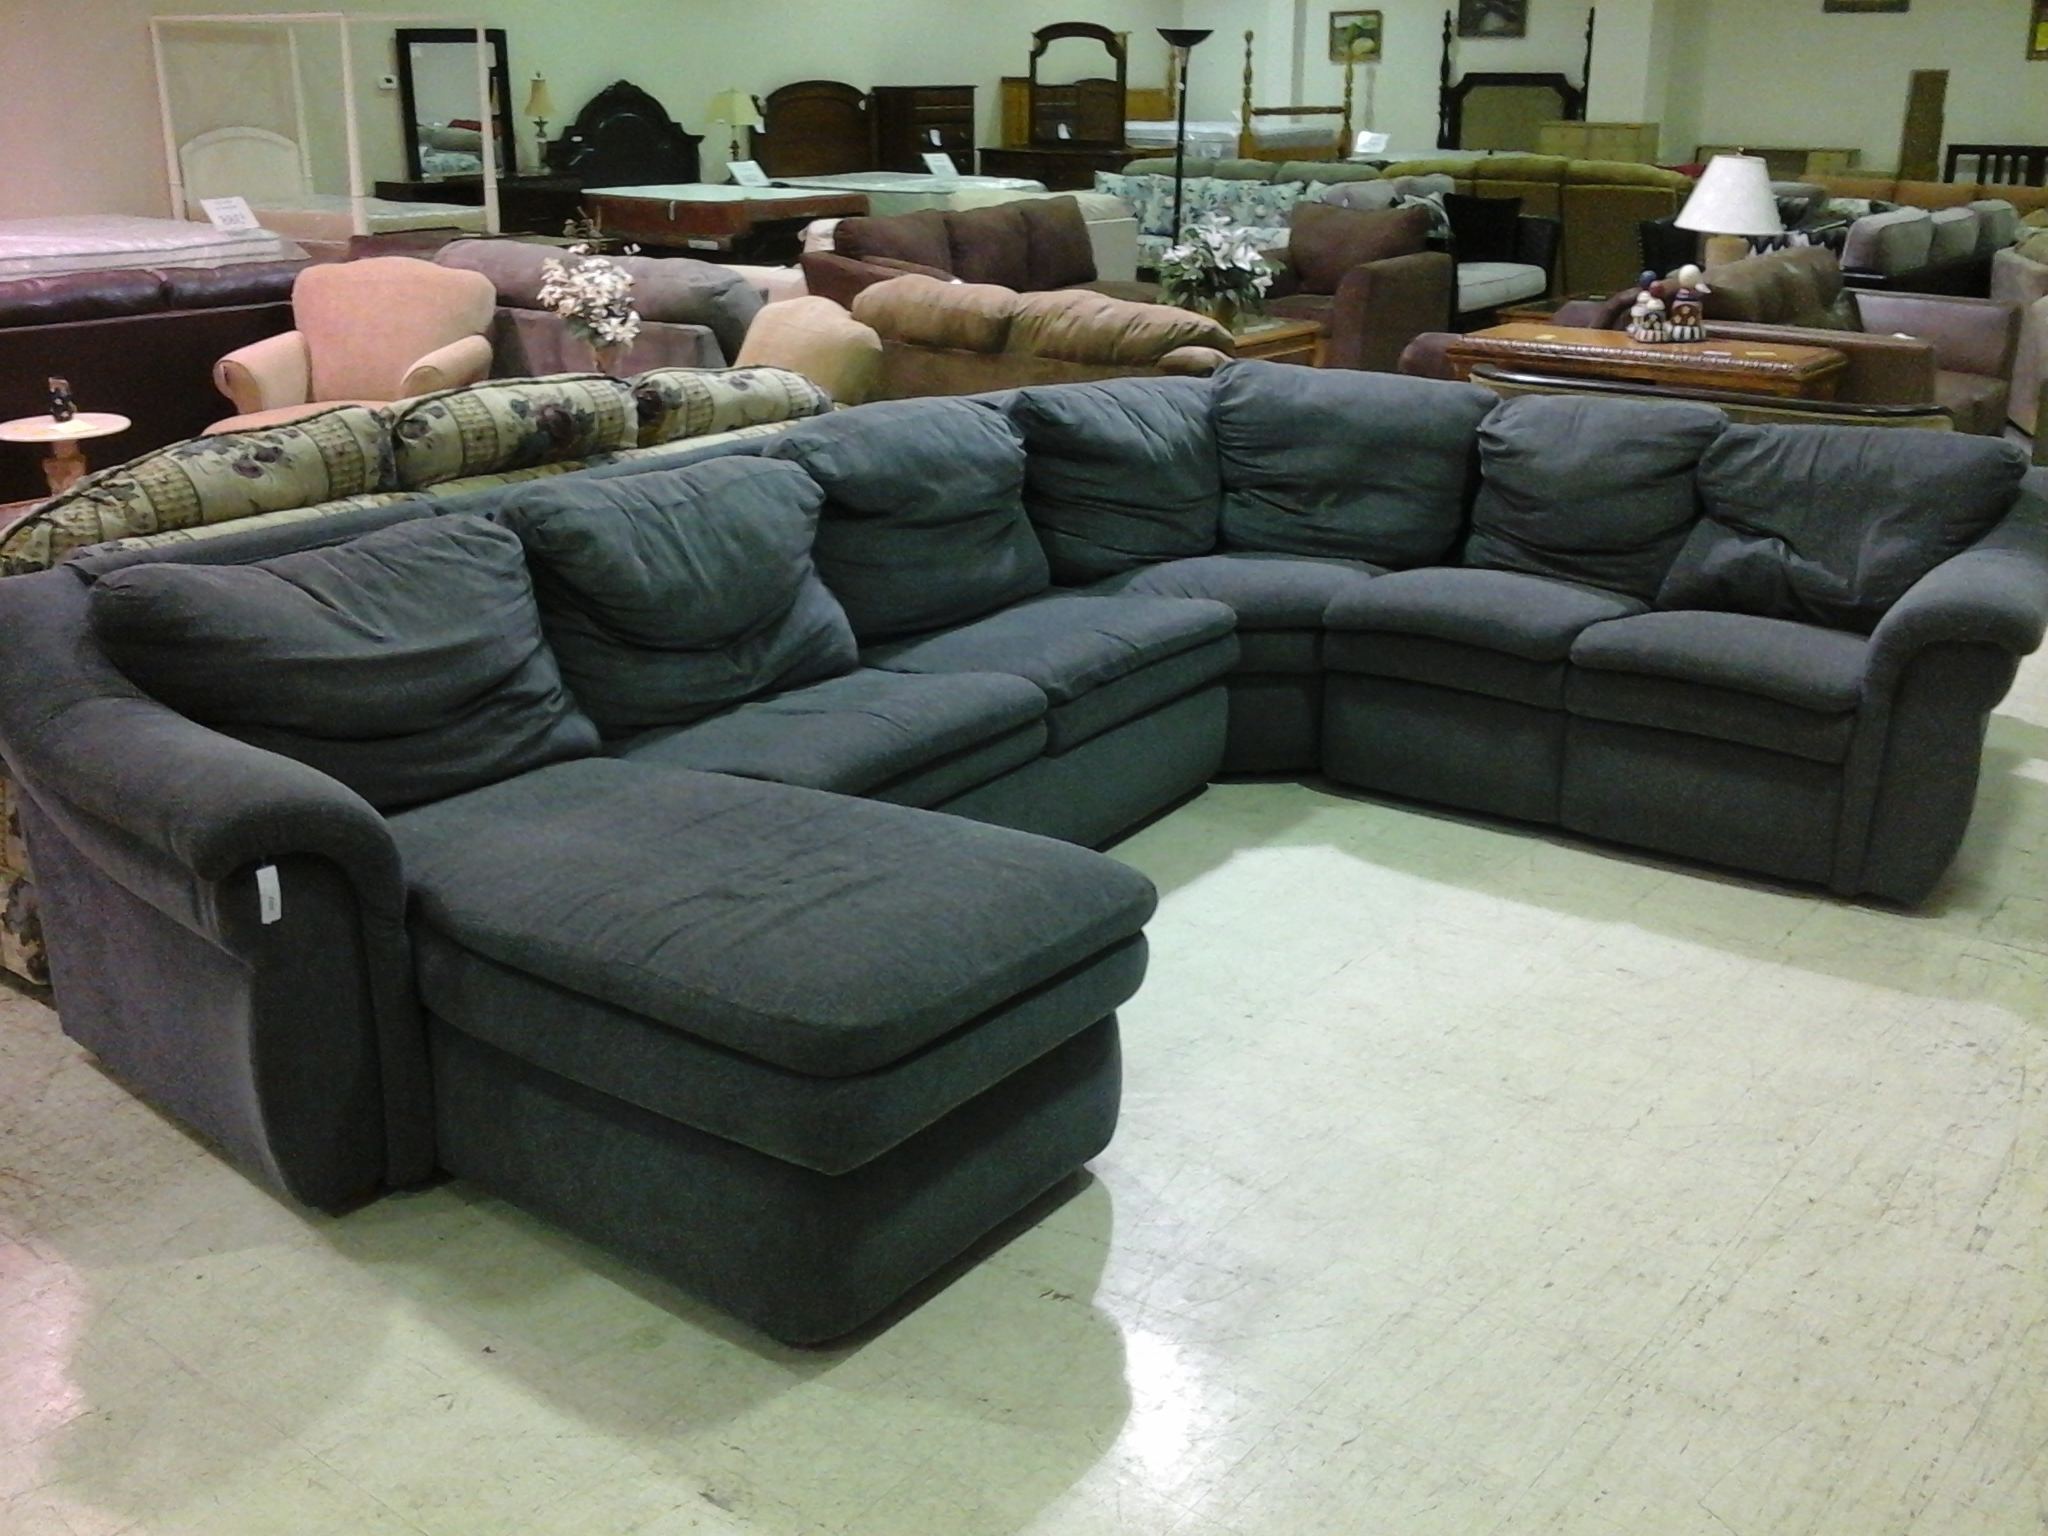 Ontario Sectional Sofas Intended For Most Popular Microfiber Sectional Sofa With Sleeper Httpml2R Com Pinterest (View 7 of 20)